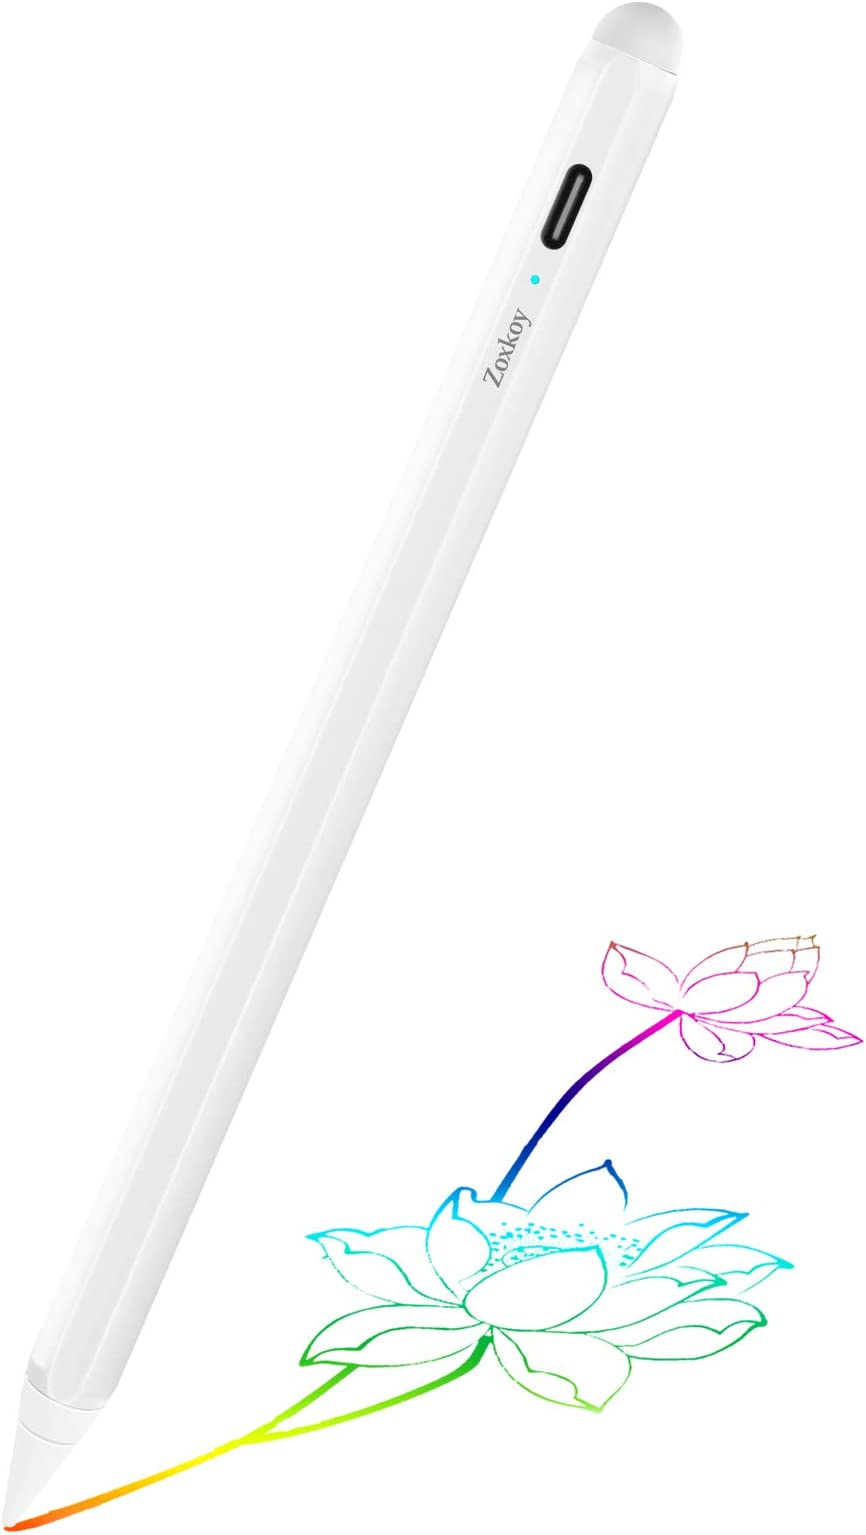 Stylus Pen for Apple iPad Pencil: Touch Pencil with Palm Rejection for Precise Writing & Drawing - Compatible with Apple iPad Pro 11/12.9 Inch iPad 6th/7th | iPad Mini 5th | iPad Air 3rd Gen